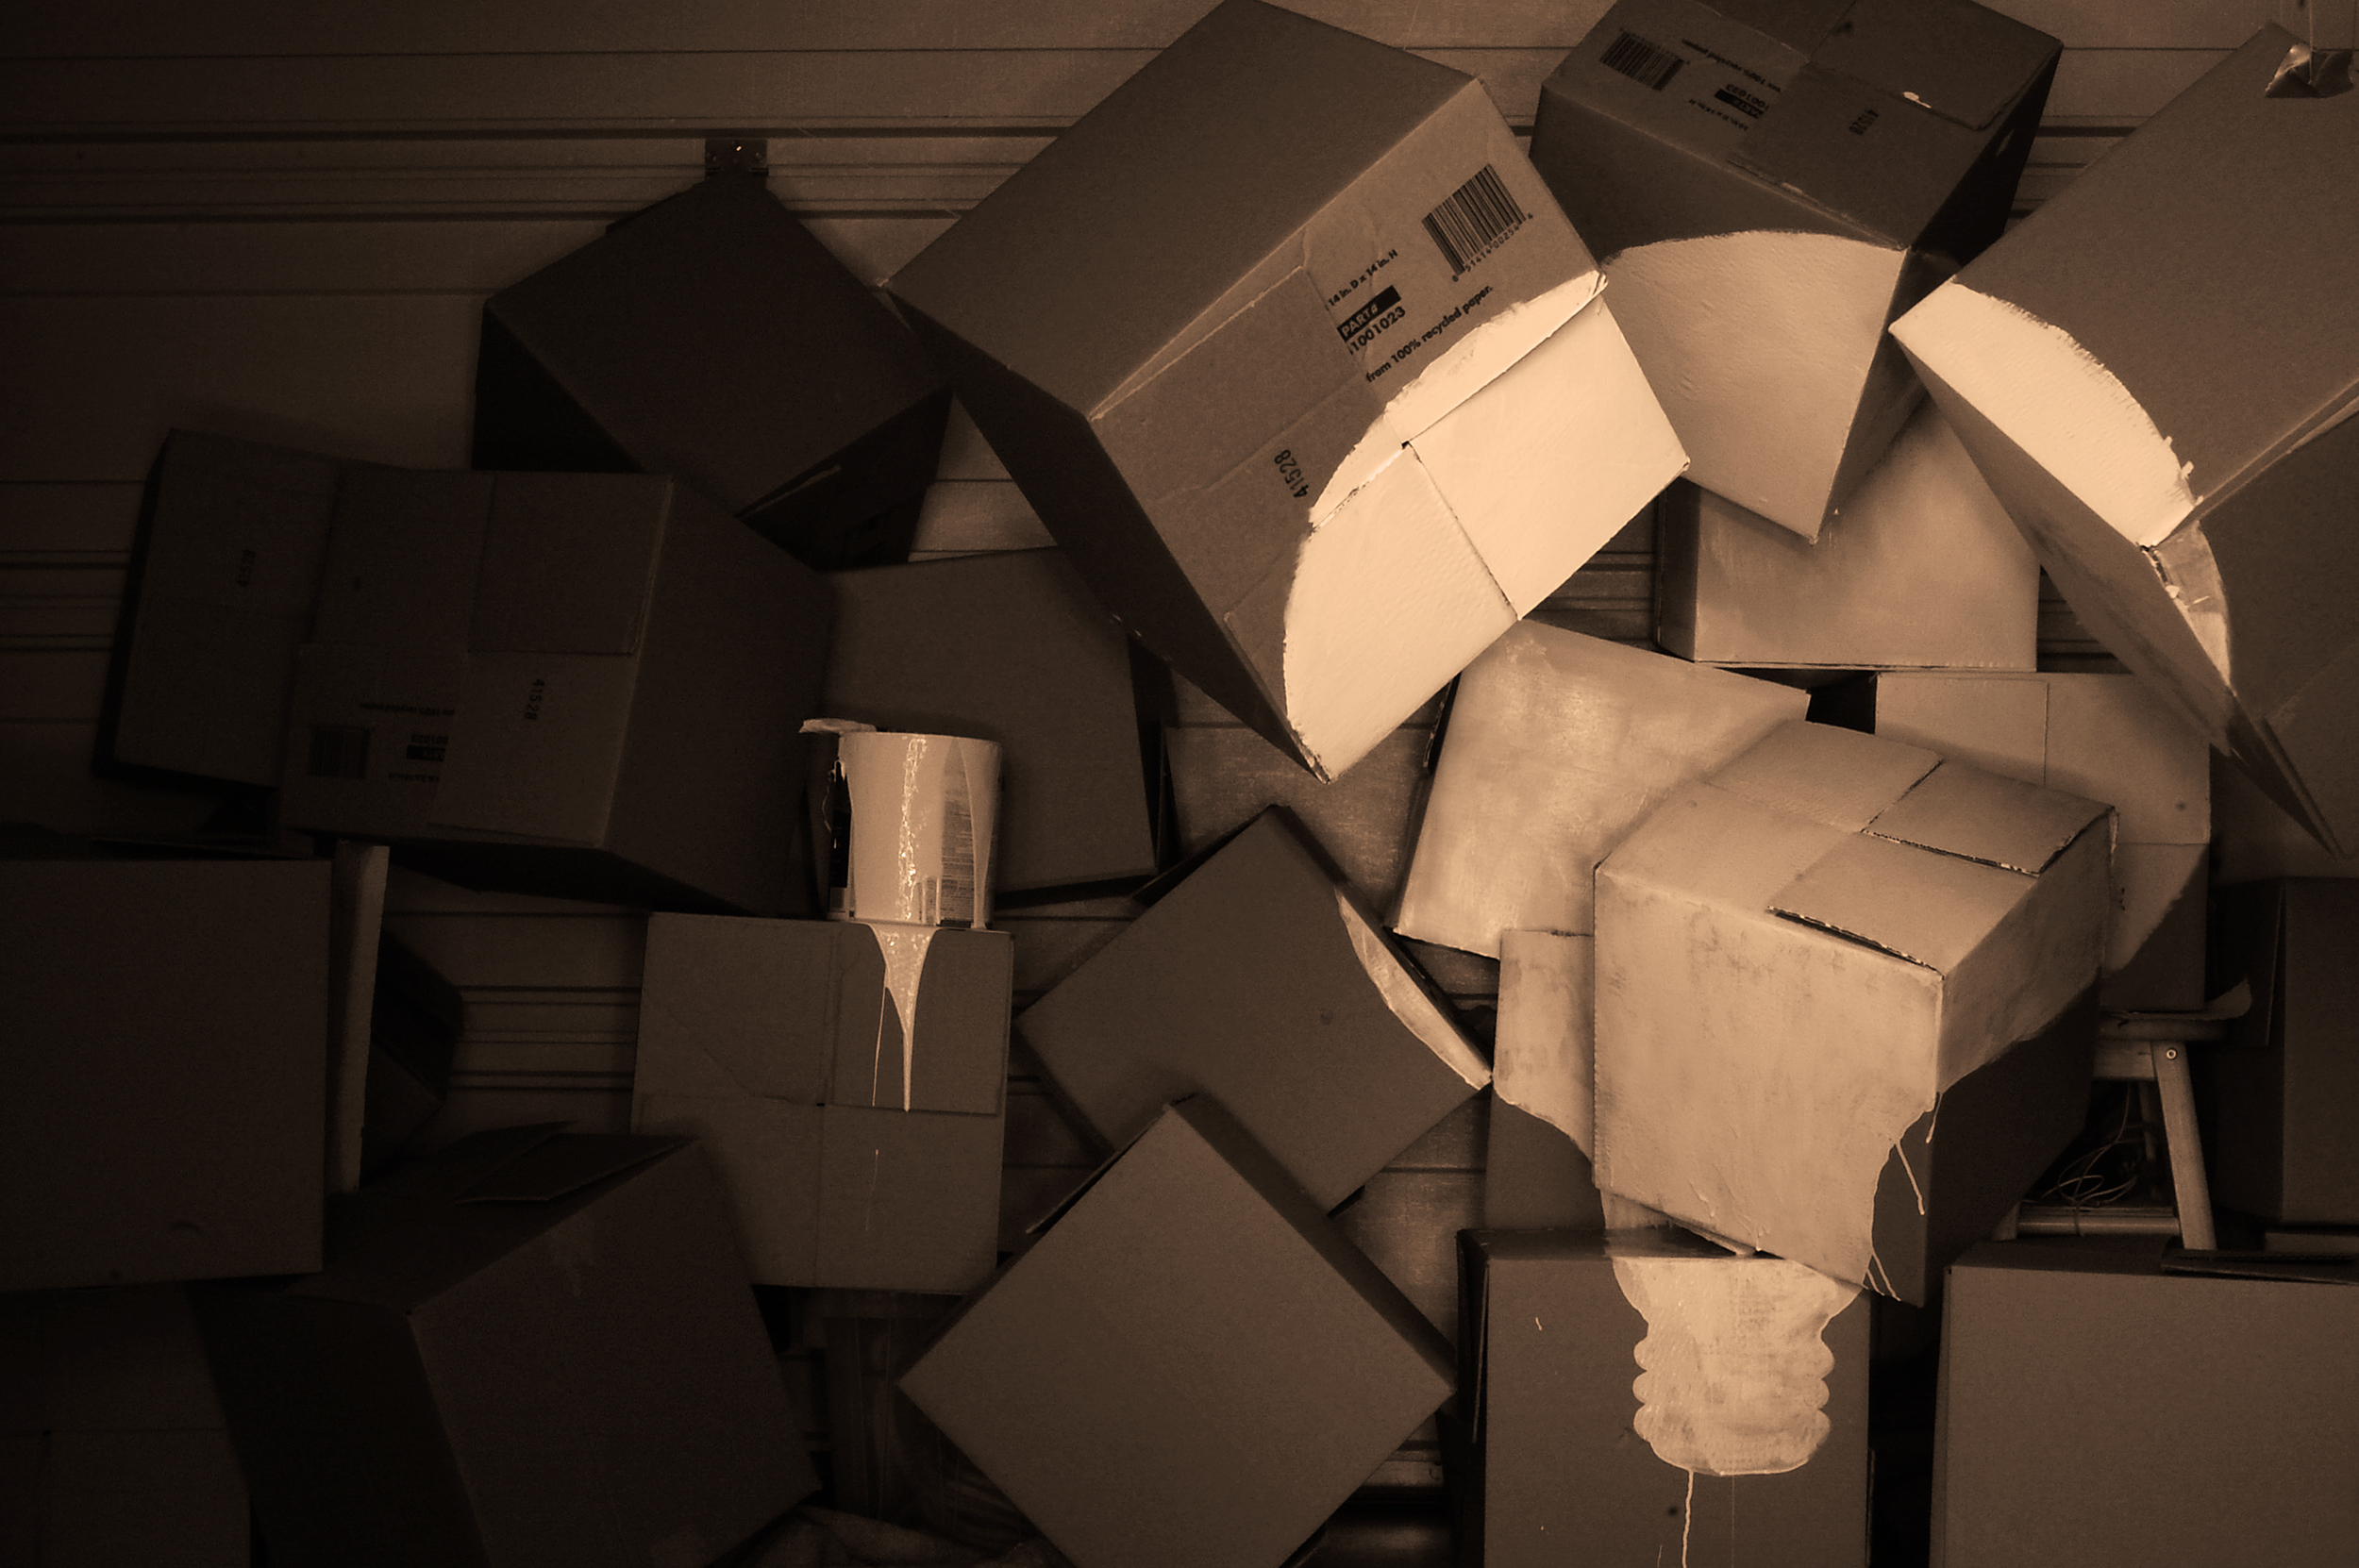 A lightbulbs' silhouette is painted on a pile of cardboard boxes